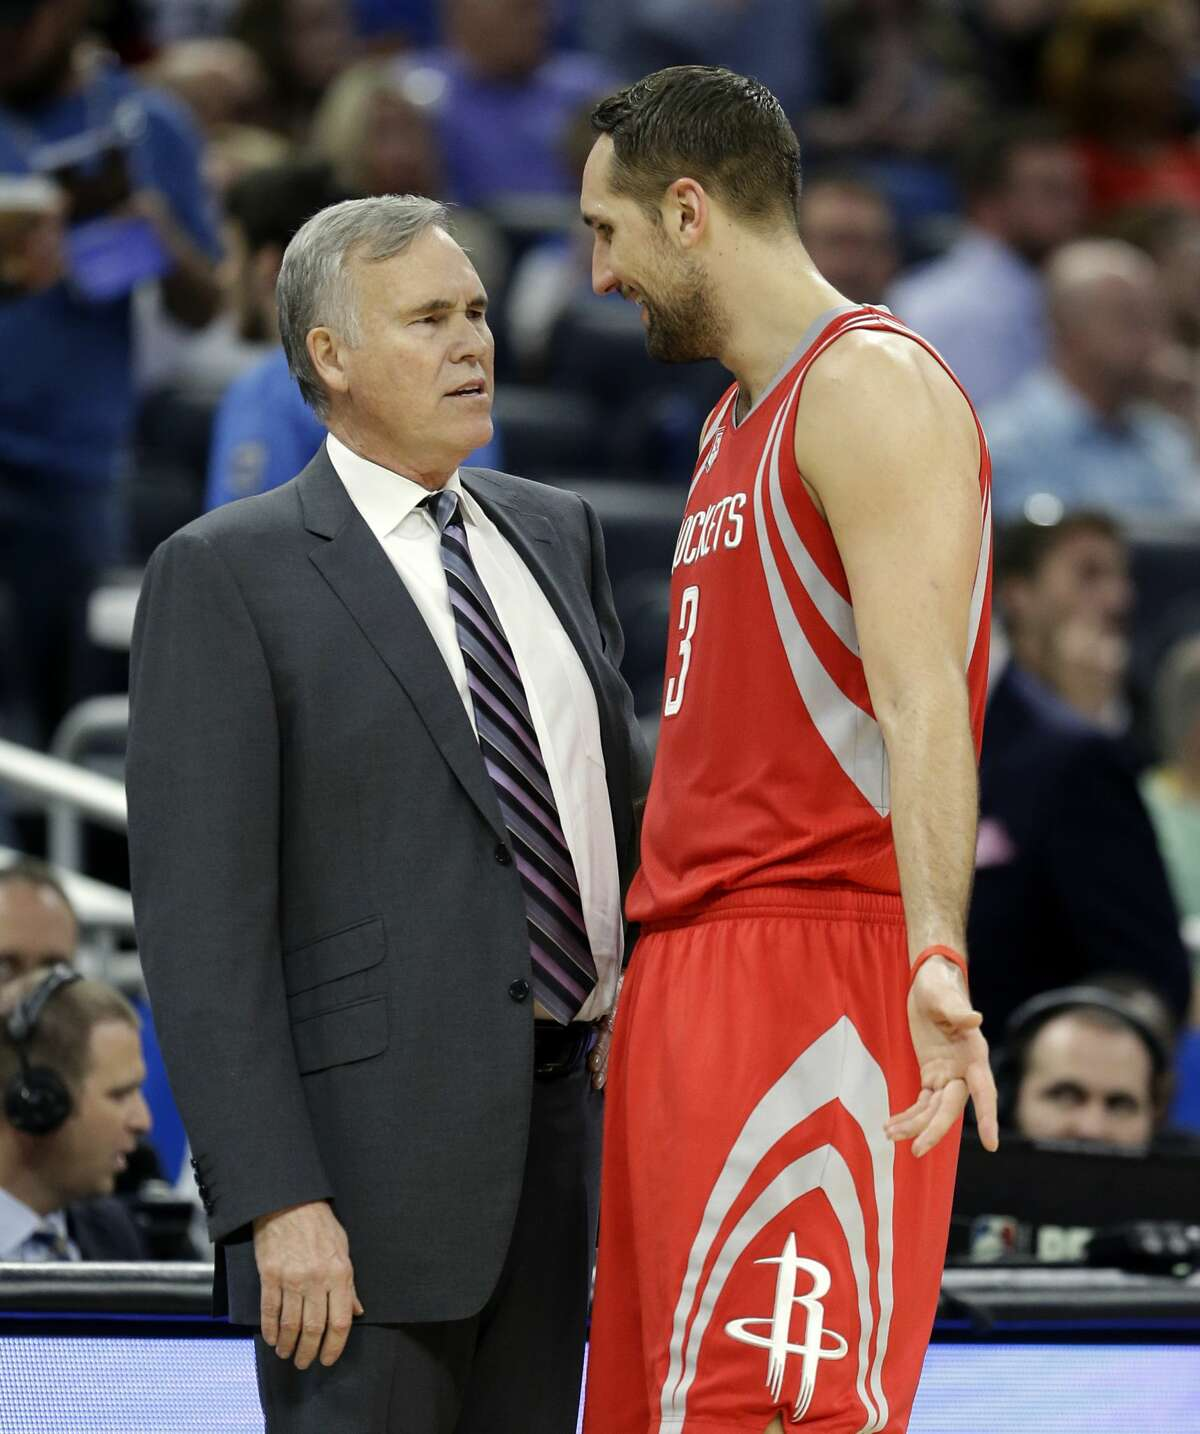 Houston Rockets head coach Mike D'Antoni, left, talks with forward Ryan Anderson during the second half of an NBA basketball game against the Orlando Magic, Friday, Jan. 6, 2017, in Orlando, Fla. Houston won 100-93. (AP Photo/John Raoux)